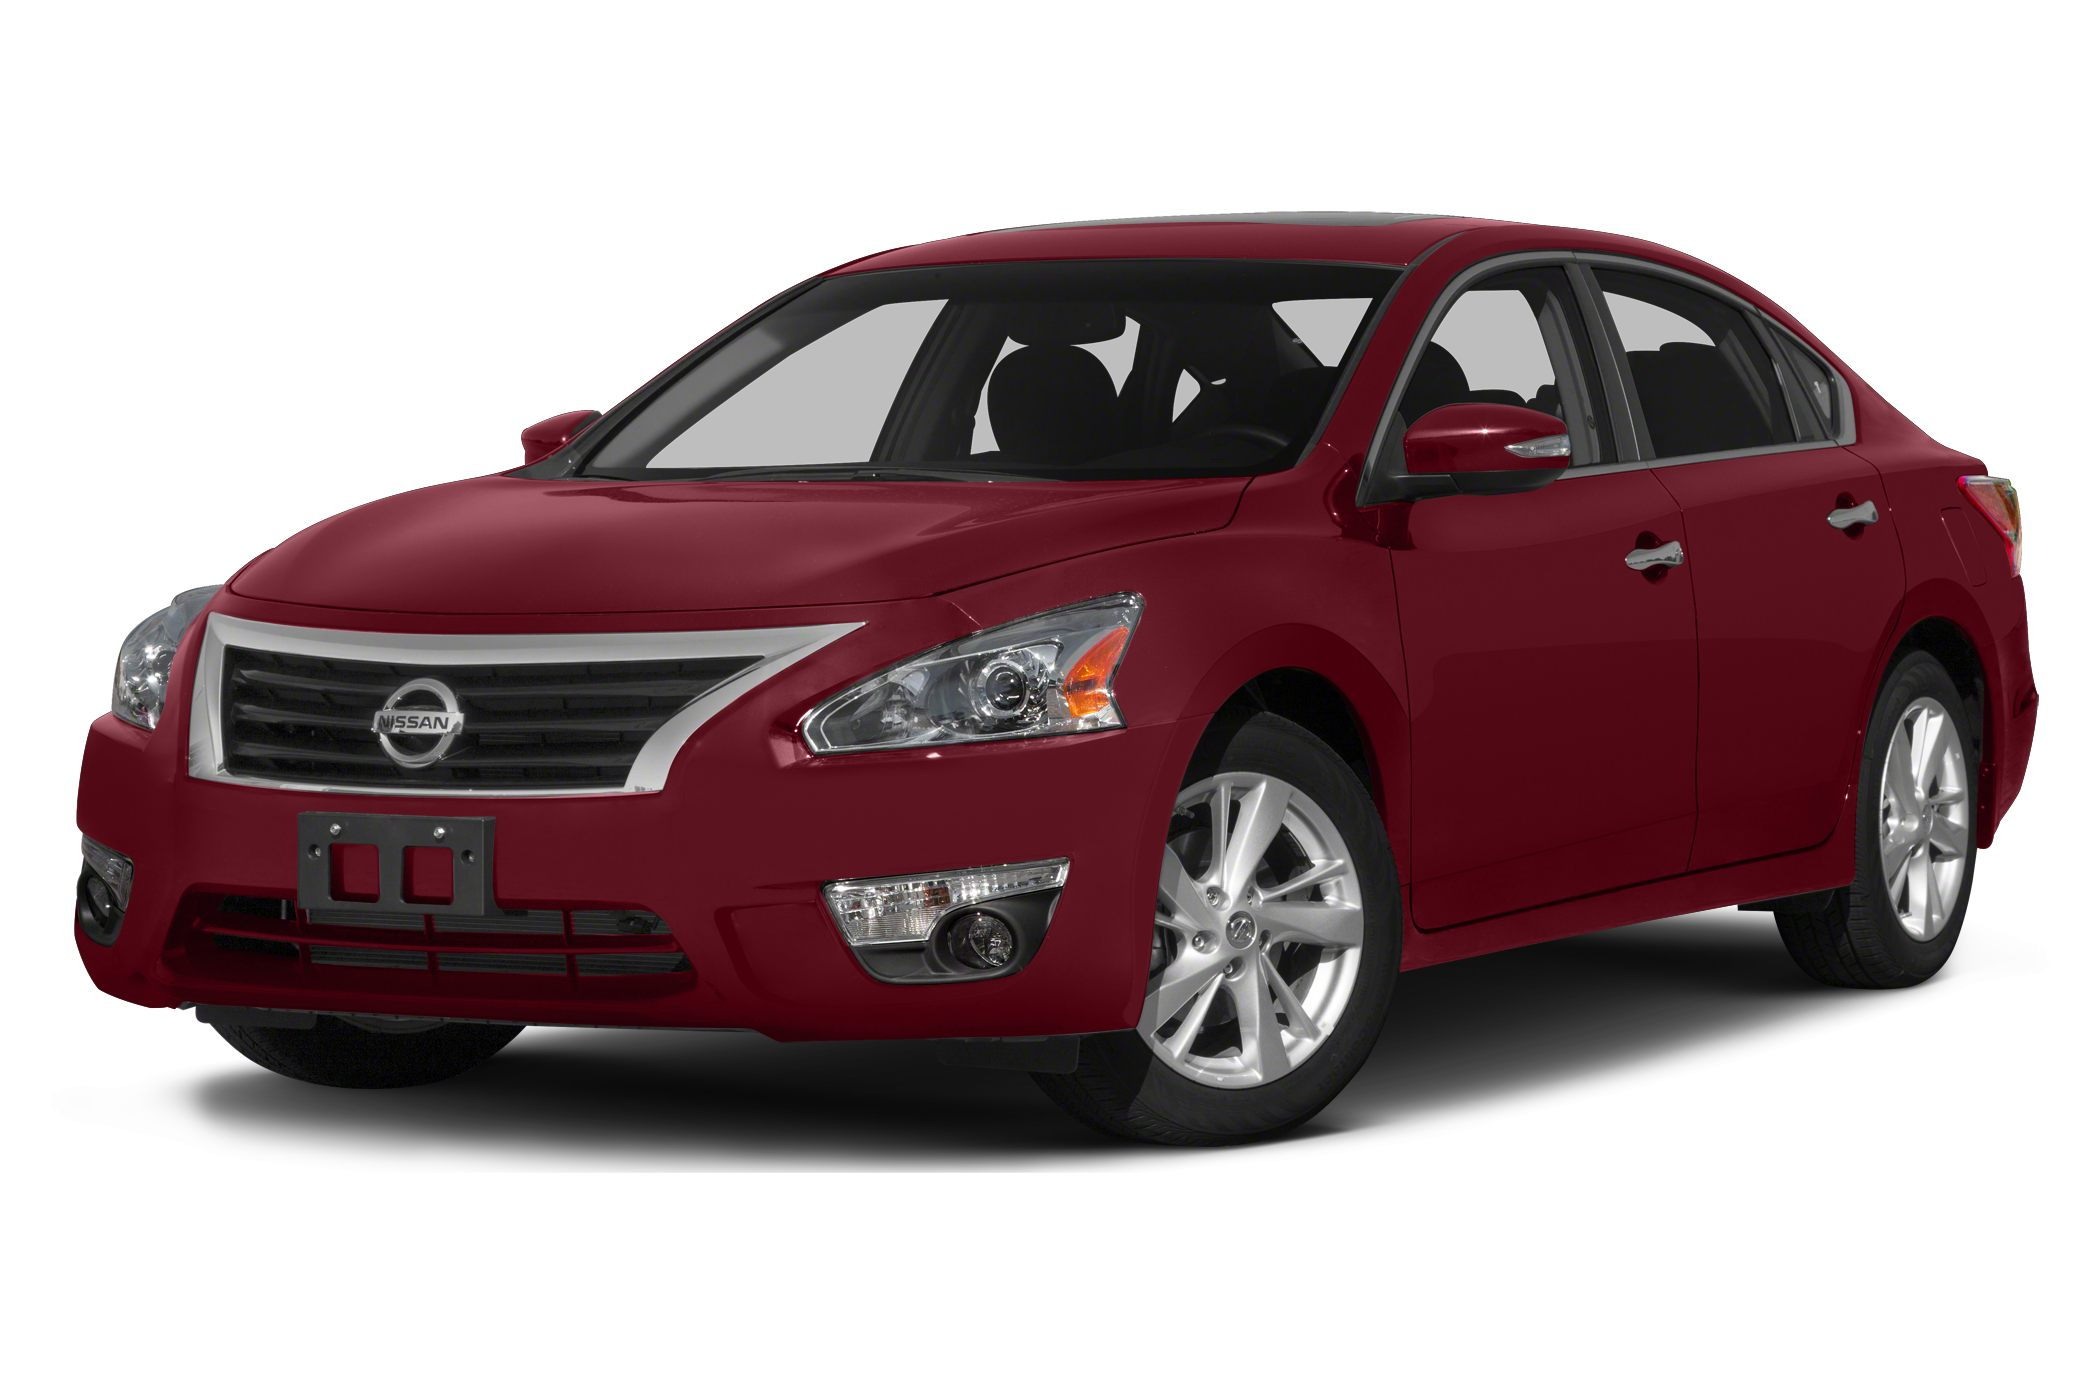 drive sv test nissan expert altima review